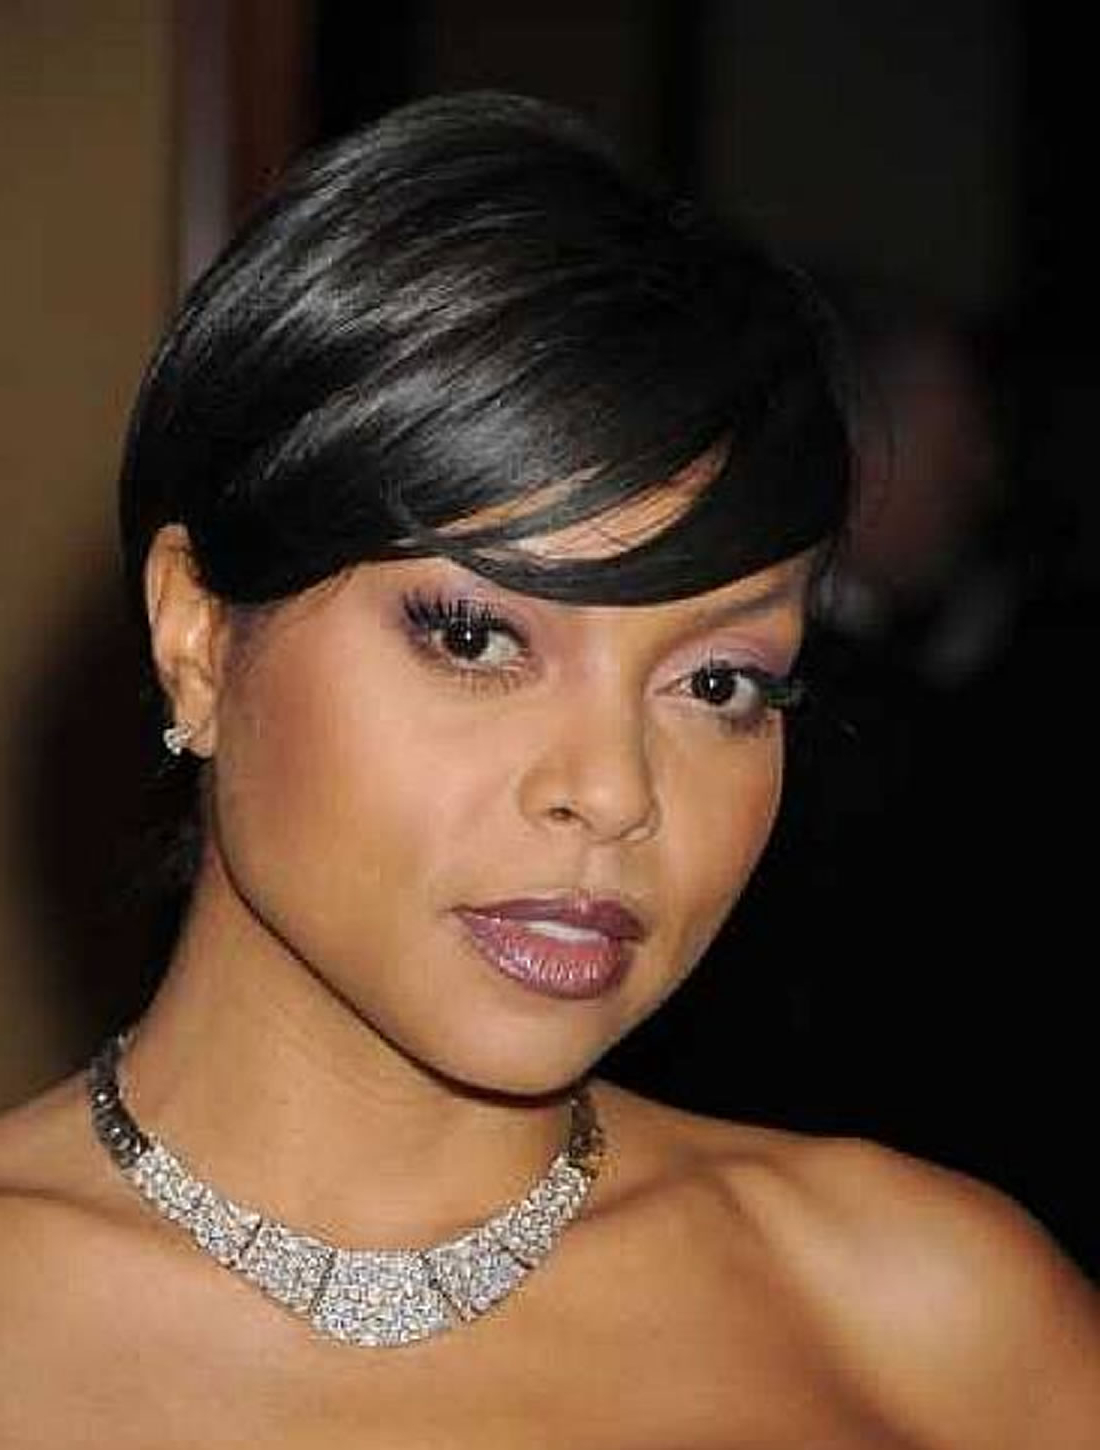 Short African American Hairstyles For Round Faces 2018 2019 – Page 2 With Short Hairstyles For Round Faces African American (View 19 of 25)